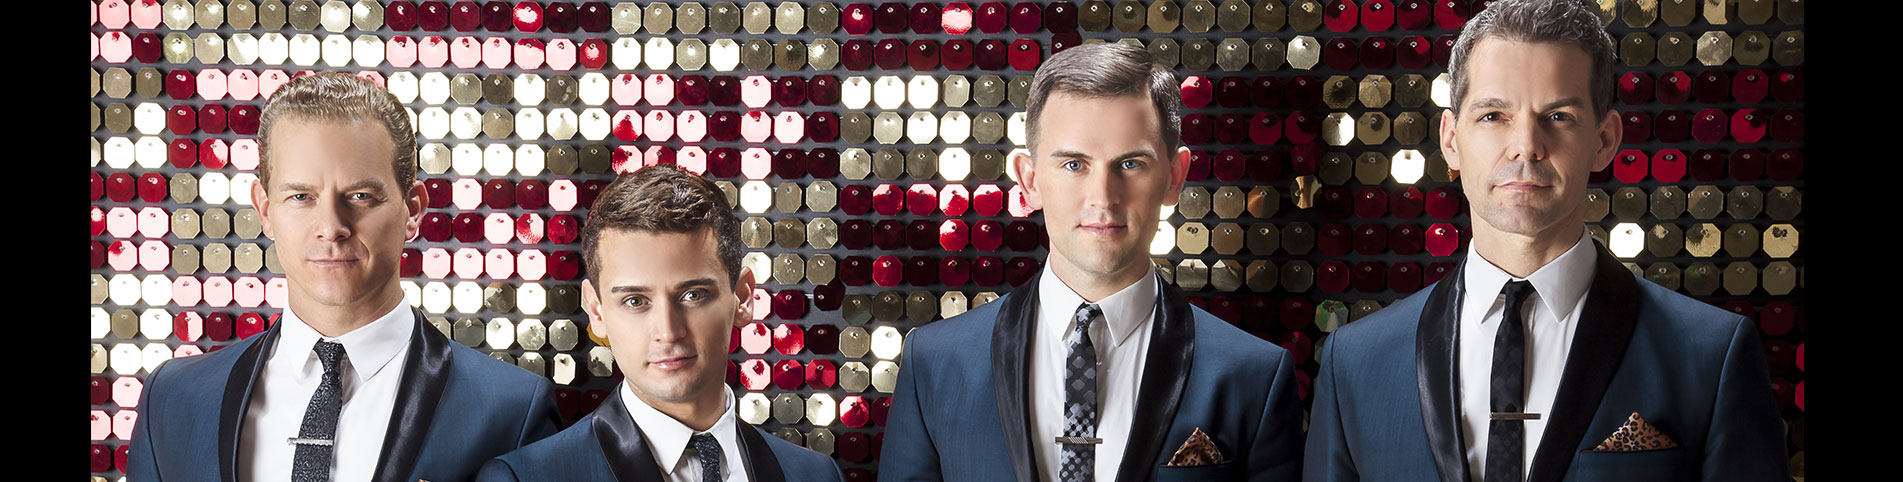 Midtown Men Holiday Hits, Stars from the Original Broadway Cast of Jersey Boys